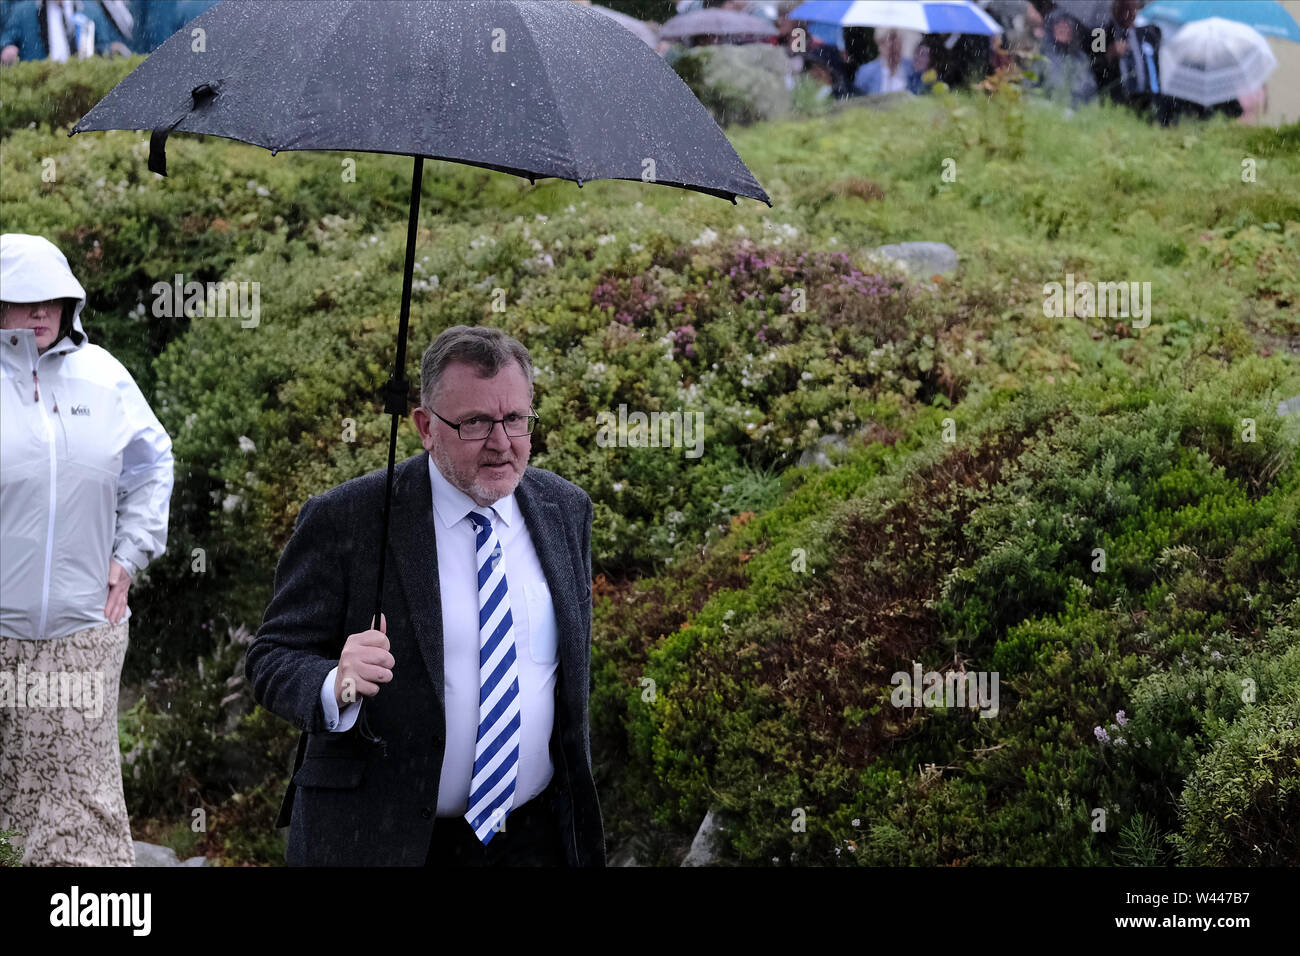 Innerleithen, UK. 19th July, 2019. St Ronans Cleikum David Mundell, Secretary of State for Scotland shelters from the rain at the Cleikum Ceremonies in Memorial Hall, Innerleithen. as part of St RonanÕs Games Week, Friday 19 July 2019 . Instituted in 1827, The Games are the oldest organised sports meeting in Scotland and are now part of a week long festival that incorporates many events for every age group. Central to the festivities are the Cleikum Ceremonies when the town's association with its Patron Saint, St. Ronan, is celebrated ( Credit: Rob Gray/Alamy Live News - Stock Image